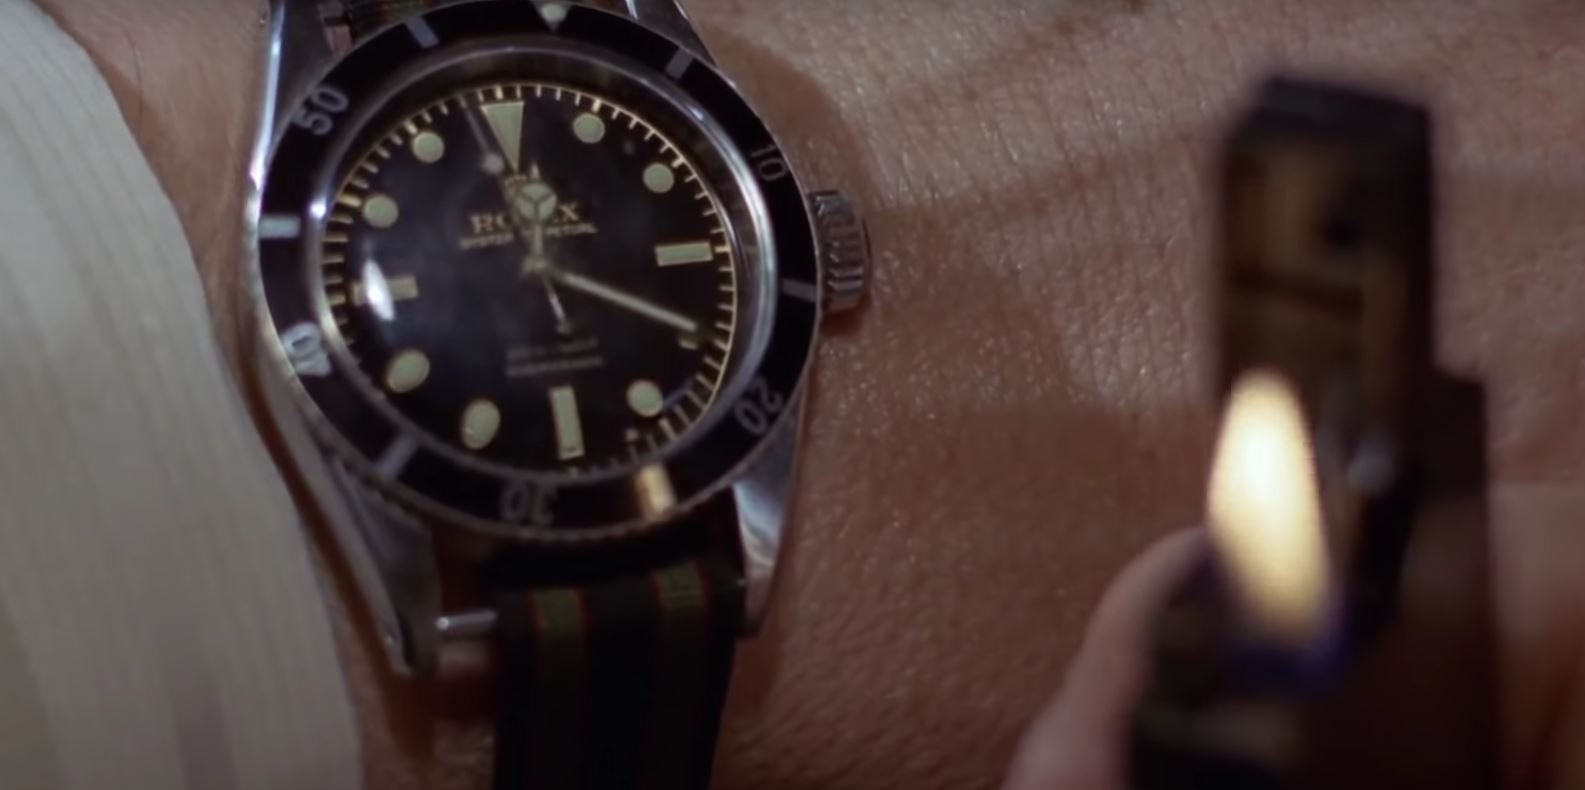 The Complete List of Bond Watches